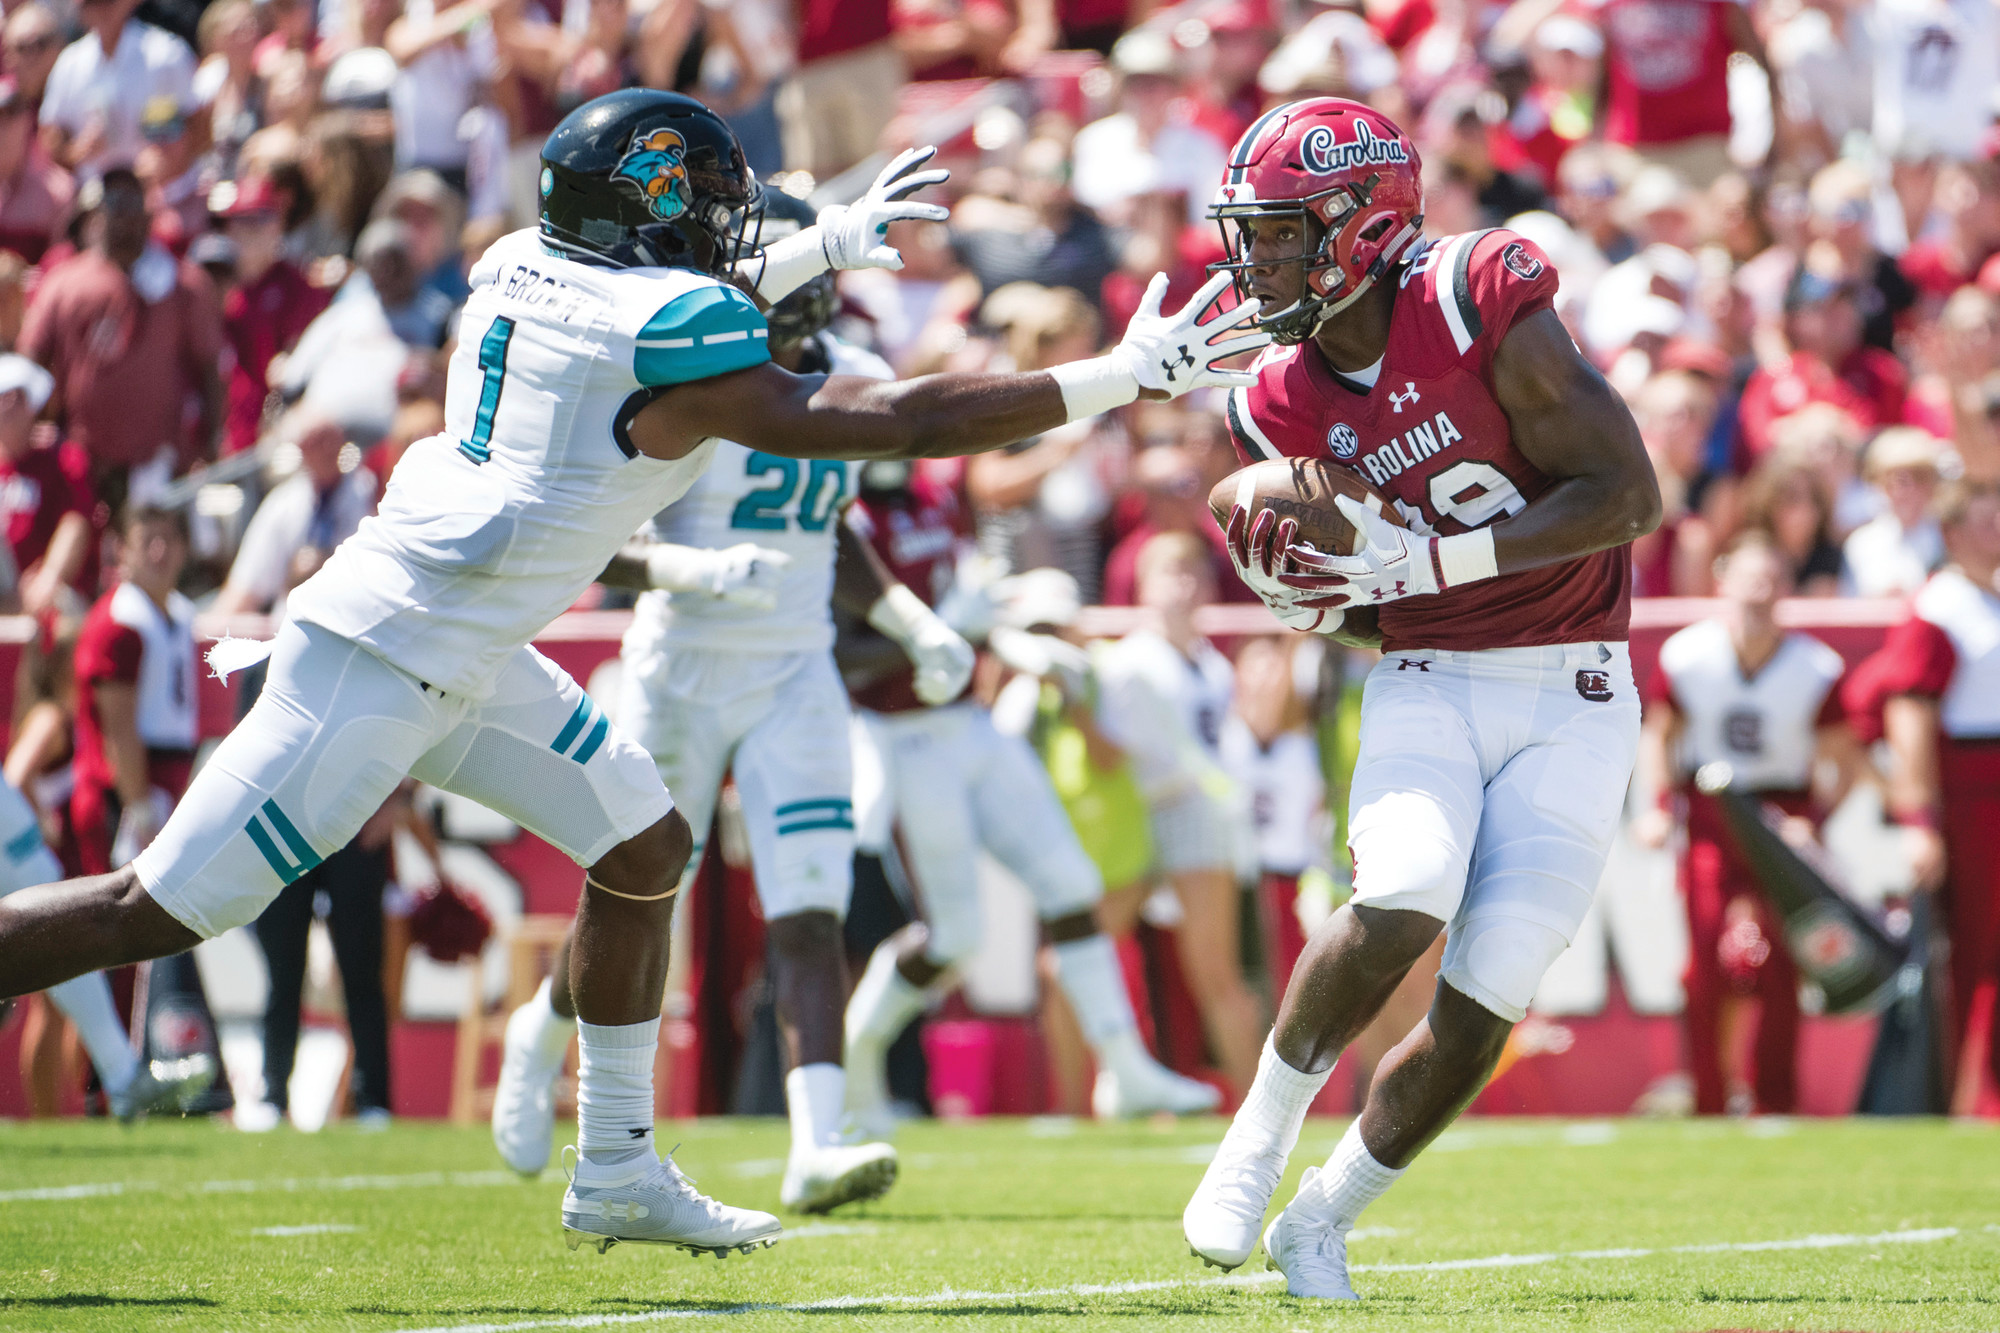 South Carolina wide receiver Bryan Edwards (89) catches a touchdown pass against  Coastal Carolina safety Jave Brown (1) during the first half of the Gamecocks 49-15 victory on Saturday in their season opener in Columbia. USC moved into The Associated Press Top 25 poll at No. 24 entering Saturday's game against No. 3 Georgia.